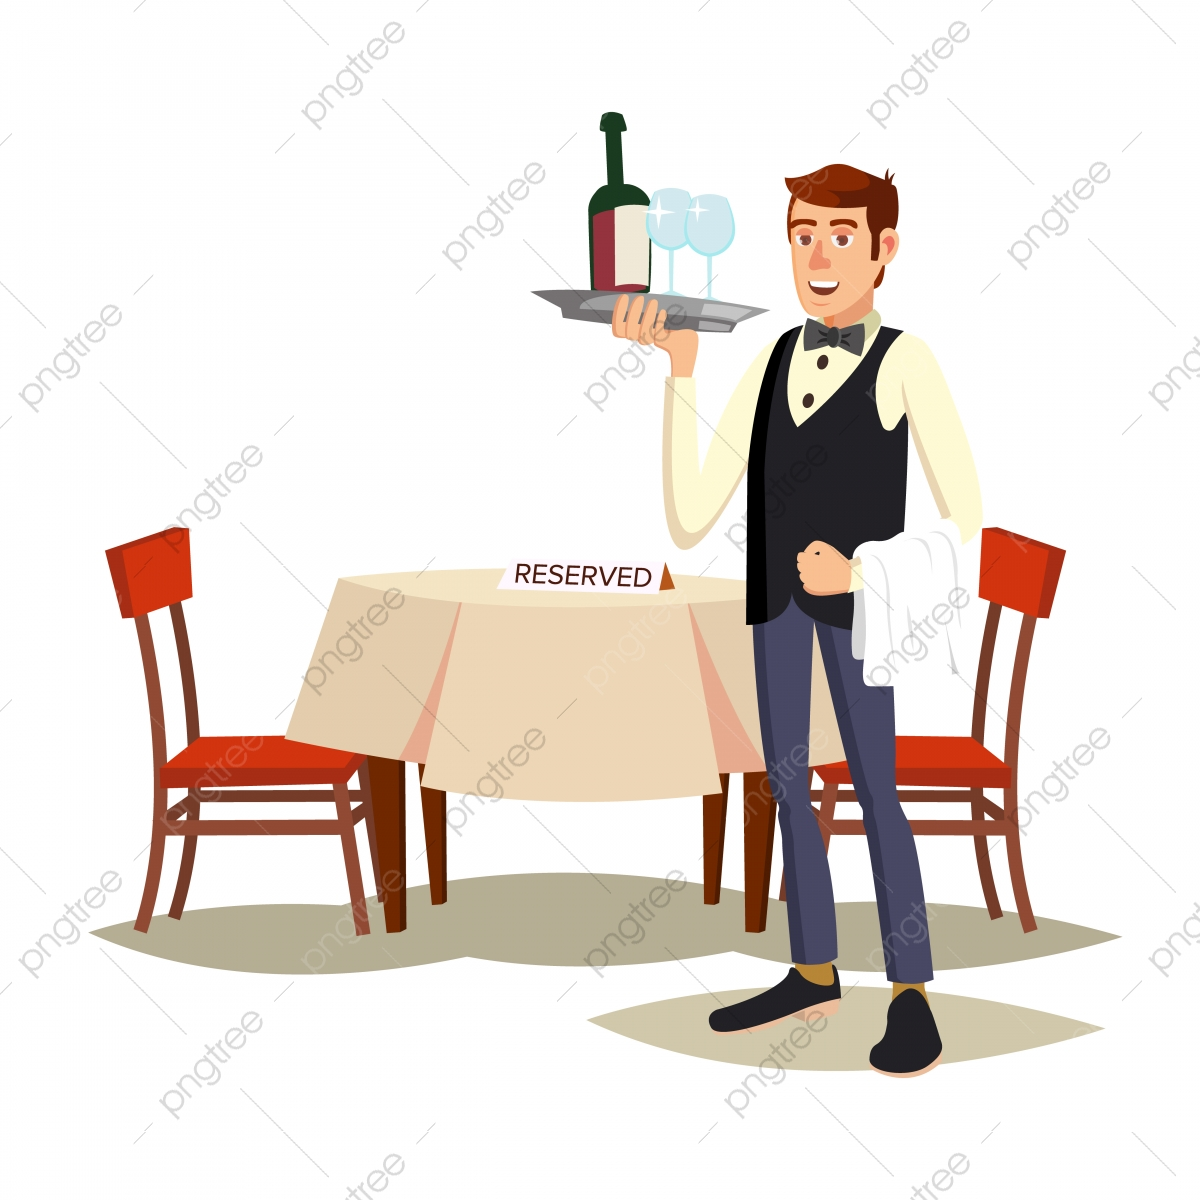 Waiter In Cafe Vector Professional Waiter Dinner Date Food Drink Concept Isolated On White Cartoon Character Illustration Restaurant Waiter Table Png And Vector With Transparent Background For Free Download